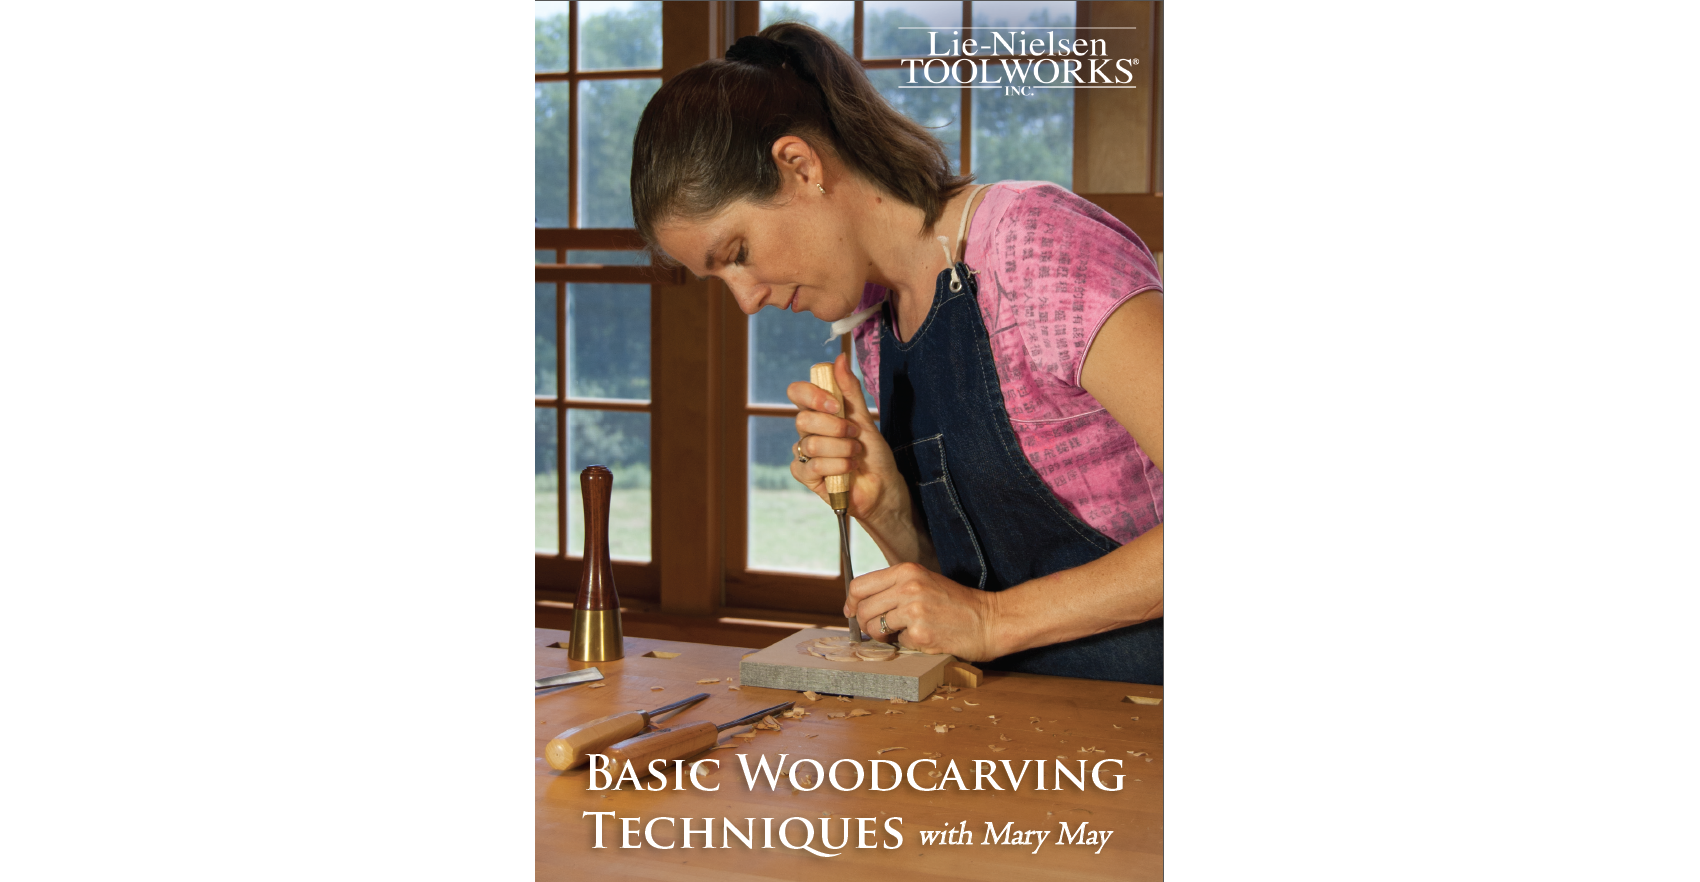 Basic Woodcarving Techniques - DVD